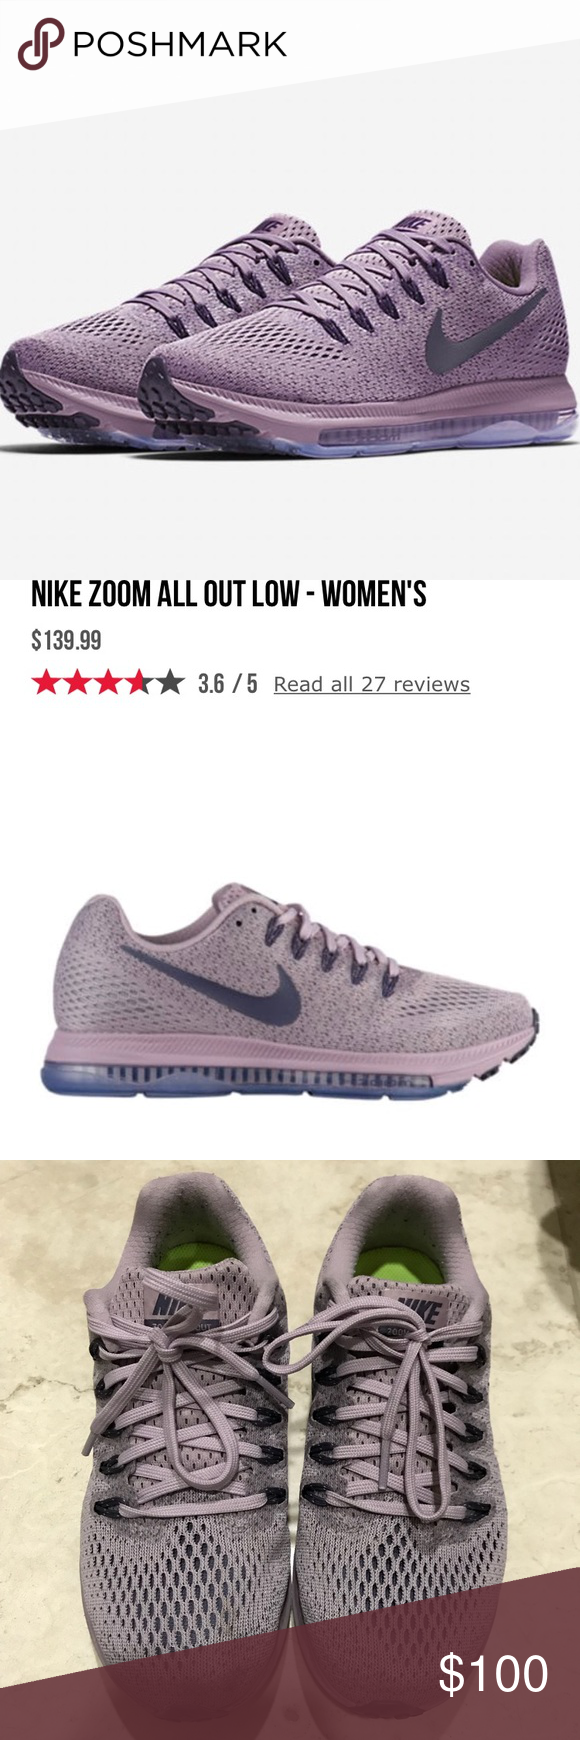 "3ca3dd54de9f NIKE zoom all out low PLUM Color is called ""plum fog dark raisin ..."